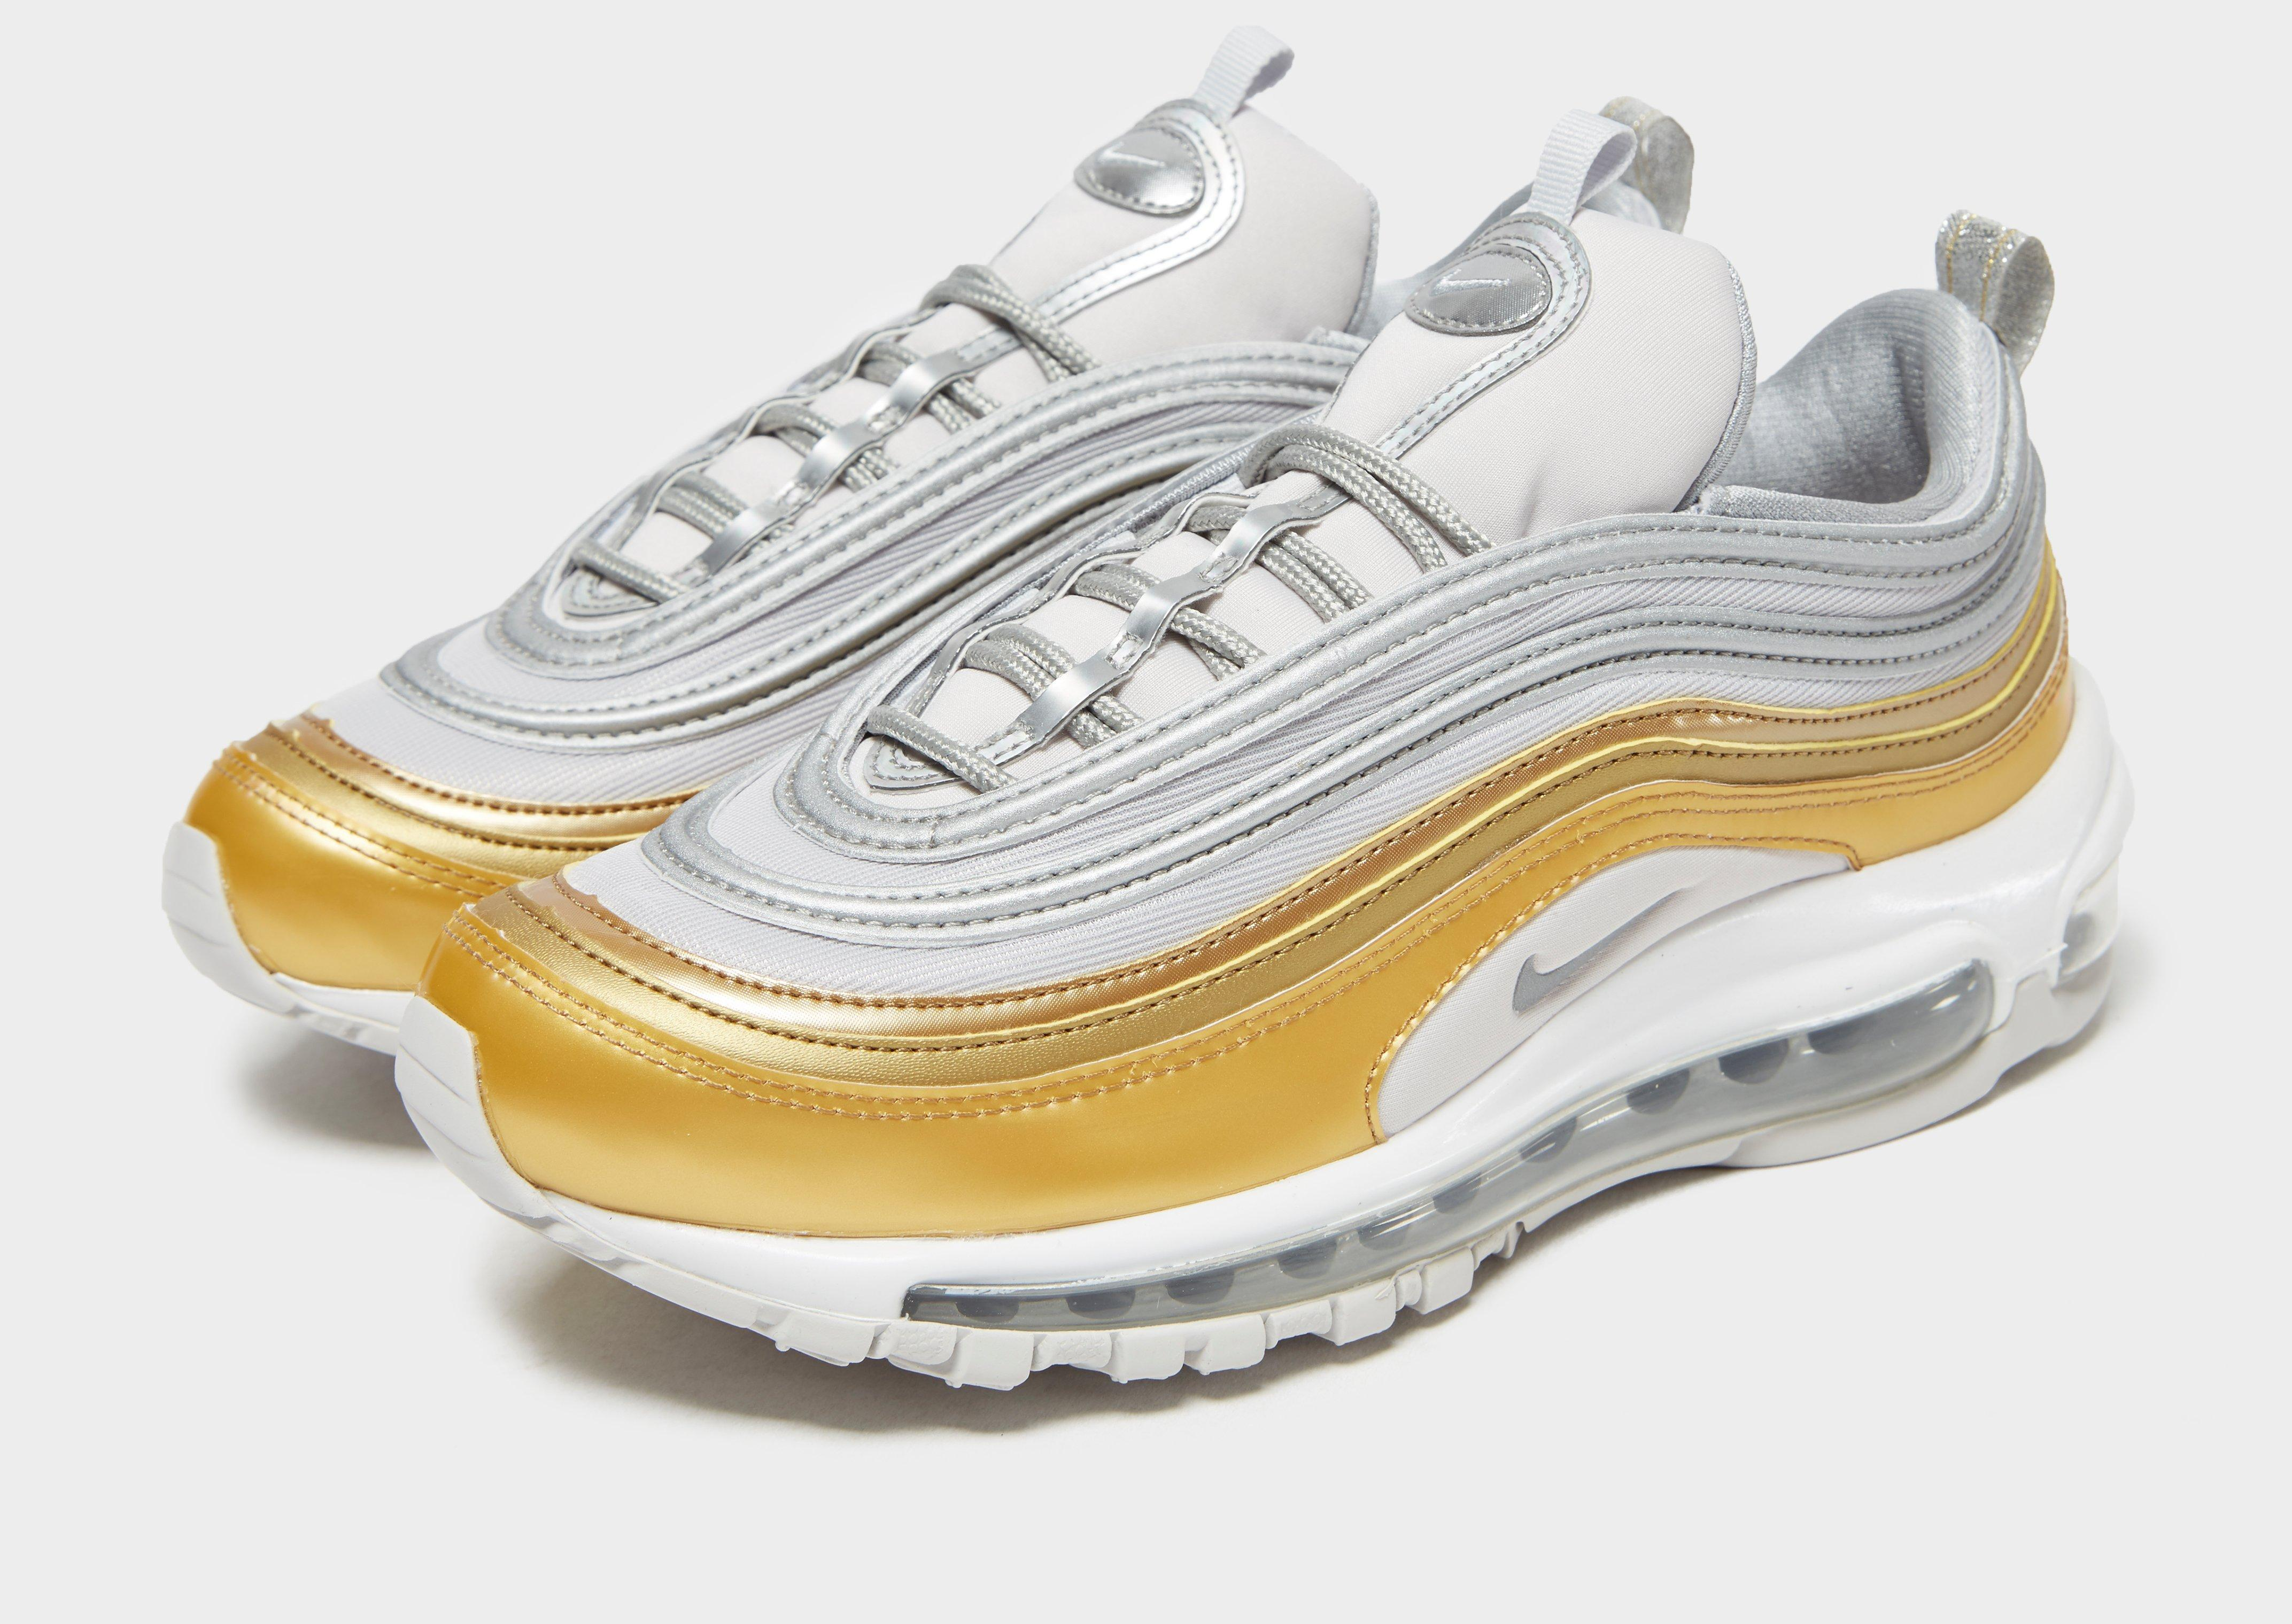 c22b287c22b16 ... get nike metallic air max 97 se sneakers lyst. view fullscreen 038c0  af351